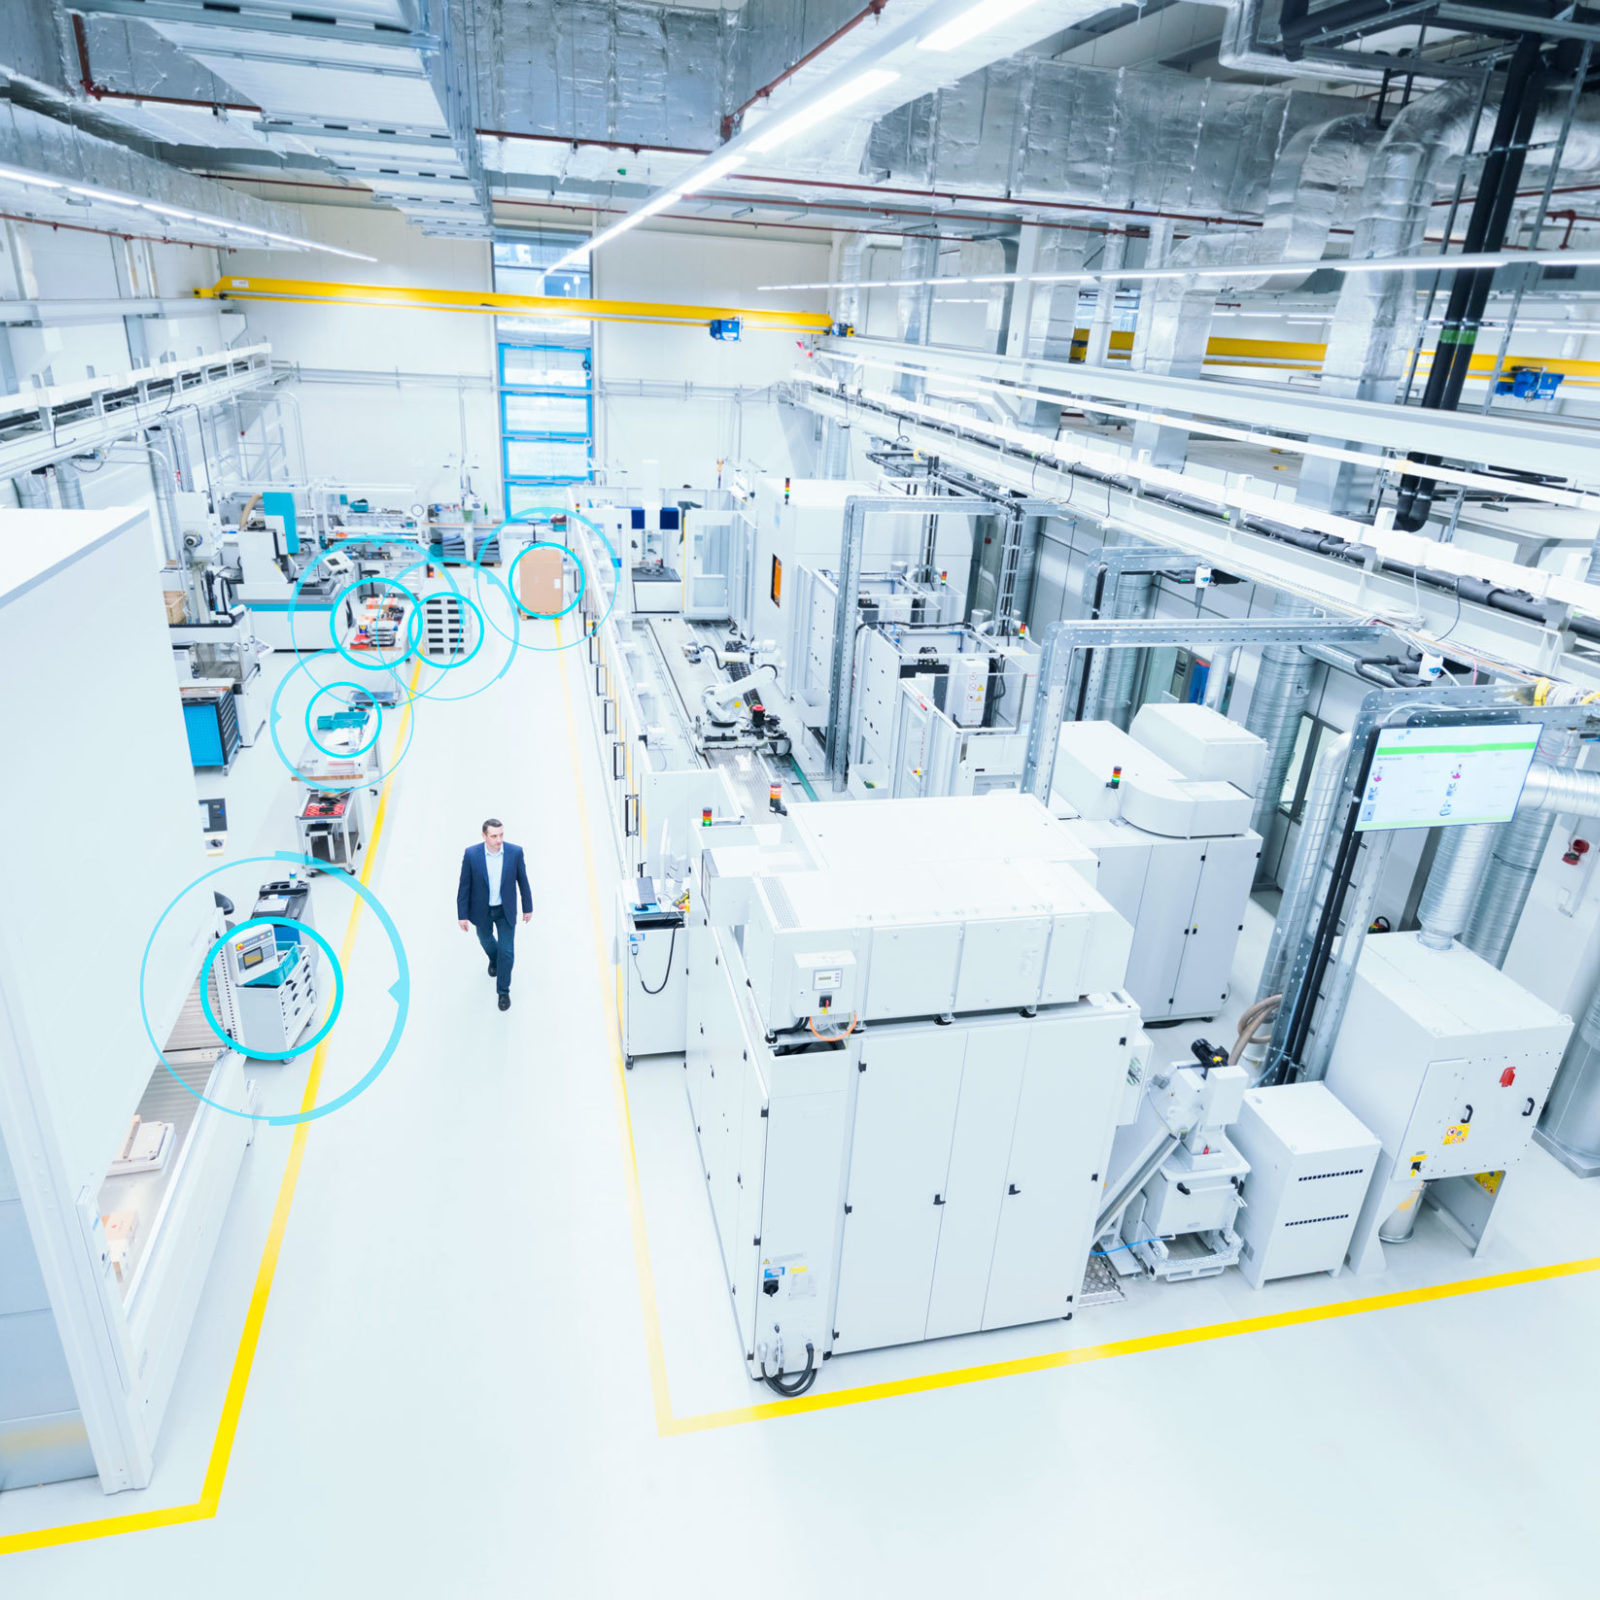 KINEXON Industries Manufacturing With Assets Getty Images 556419307 edited with Overlay Website